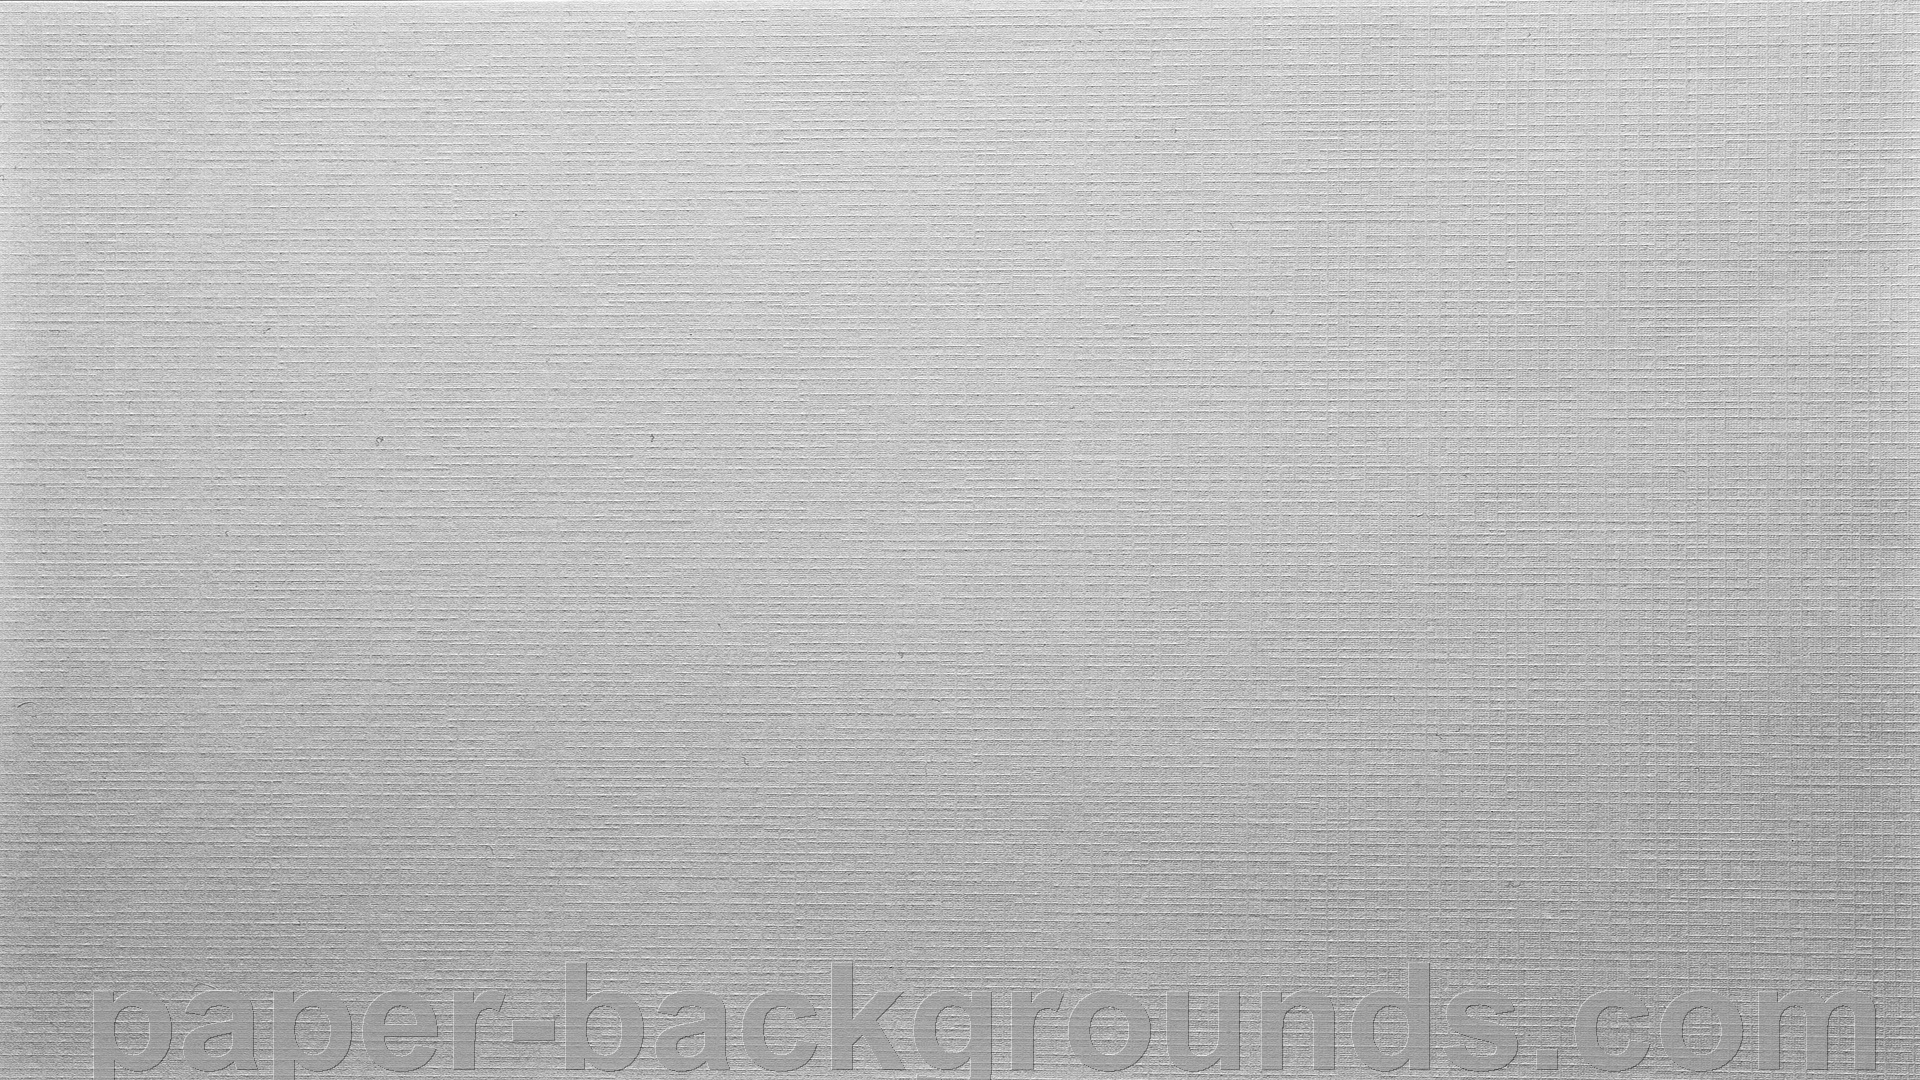 Gray Paper Background Cardboard Texture HD